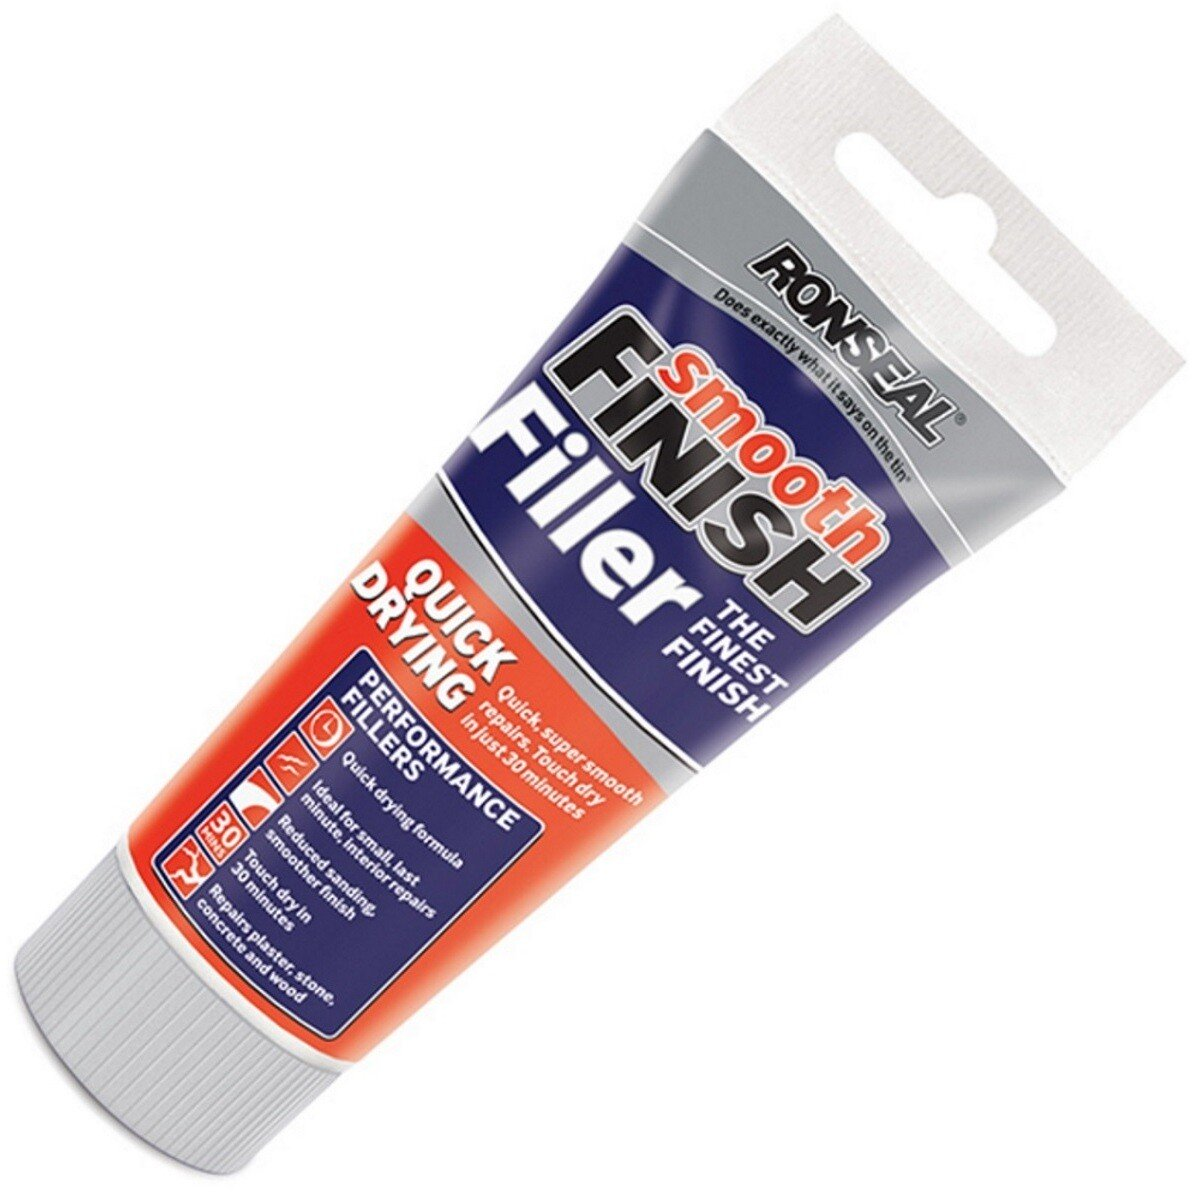 Ronseal 36552 Smooth Finish Quick Drying Multi Purpose Filler 330g RSLQDF330G